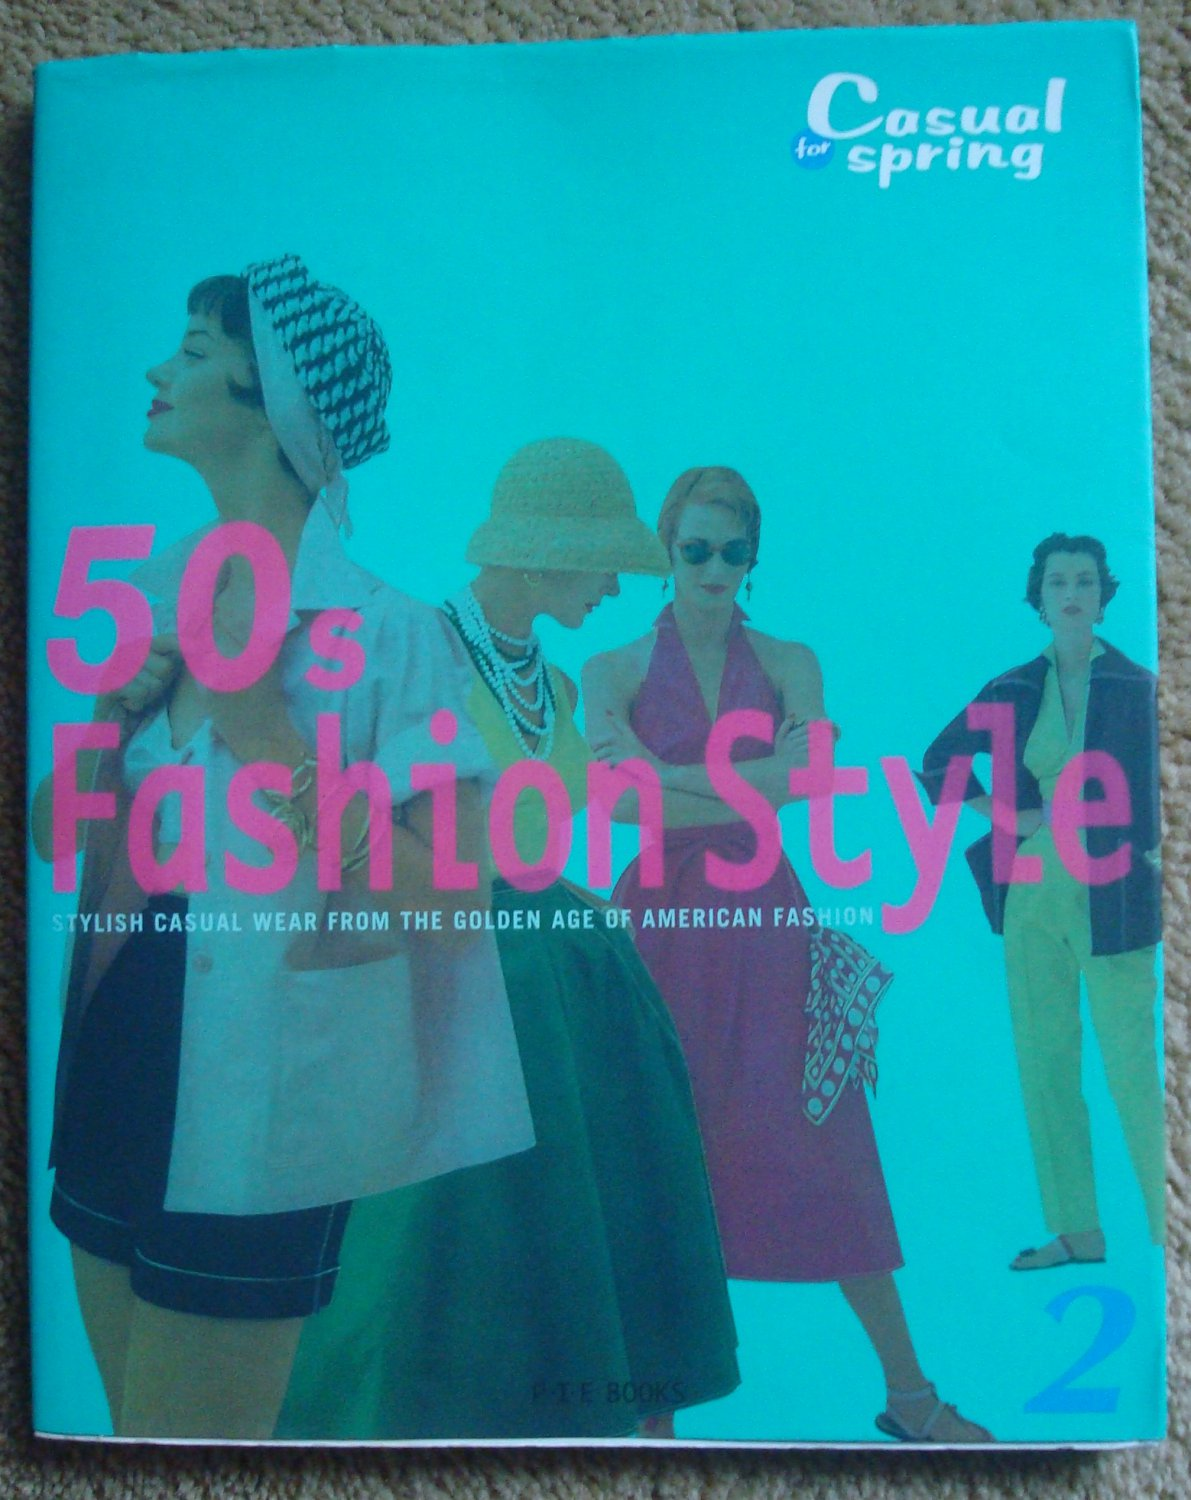 50s Fashion Style: Casual for Spring